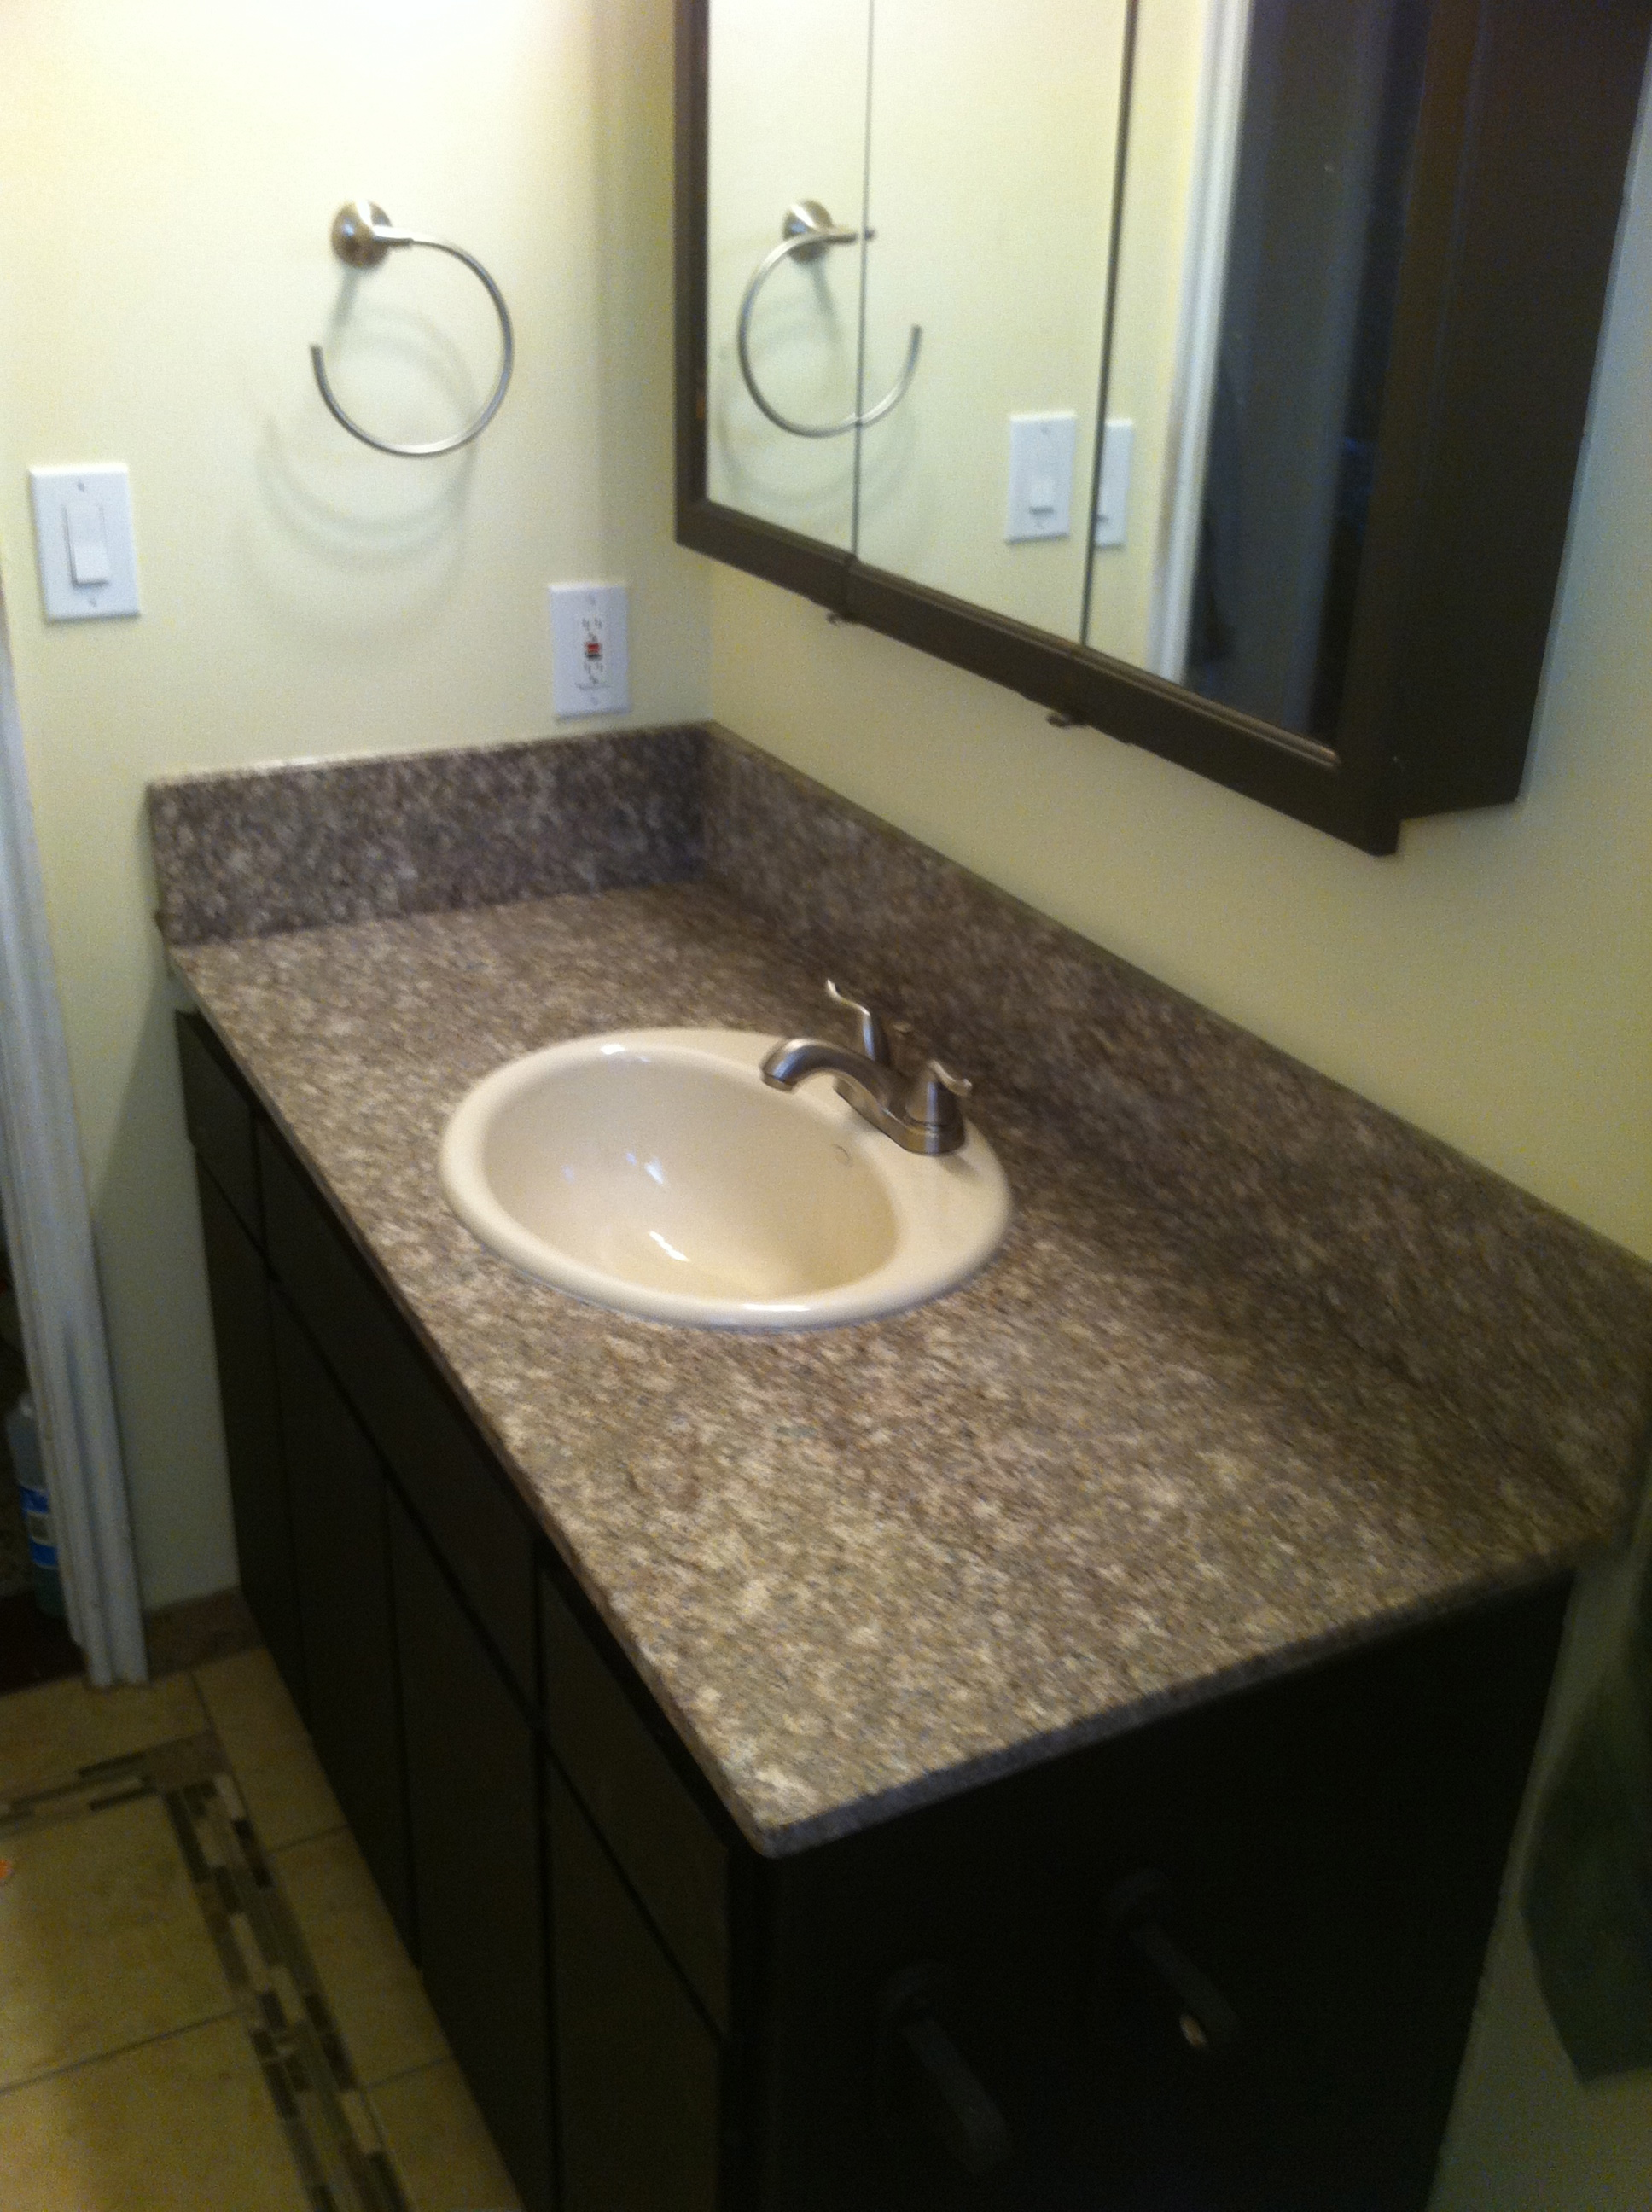 Hack An Inexpensive Granite Table Into A Bathroom Vanity 9 Steps Instructables